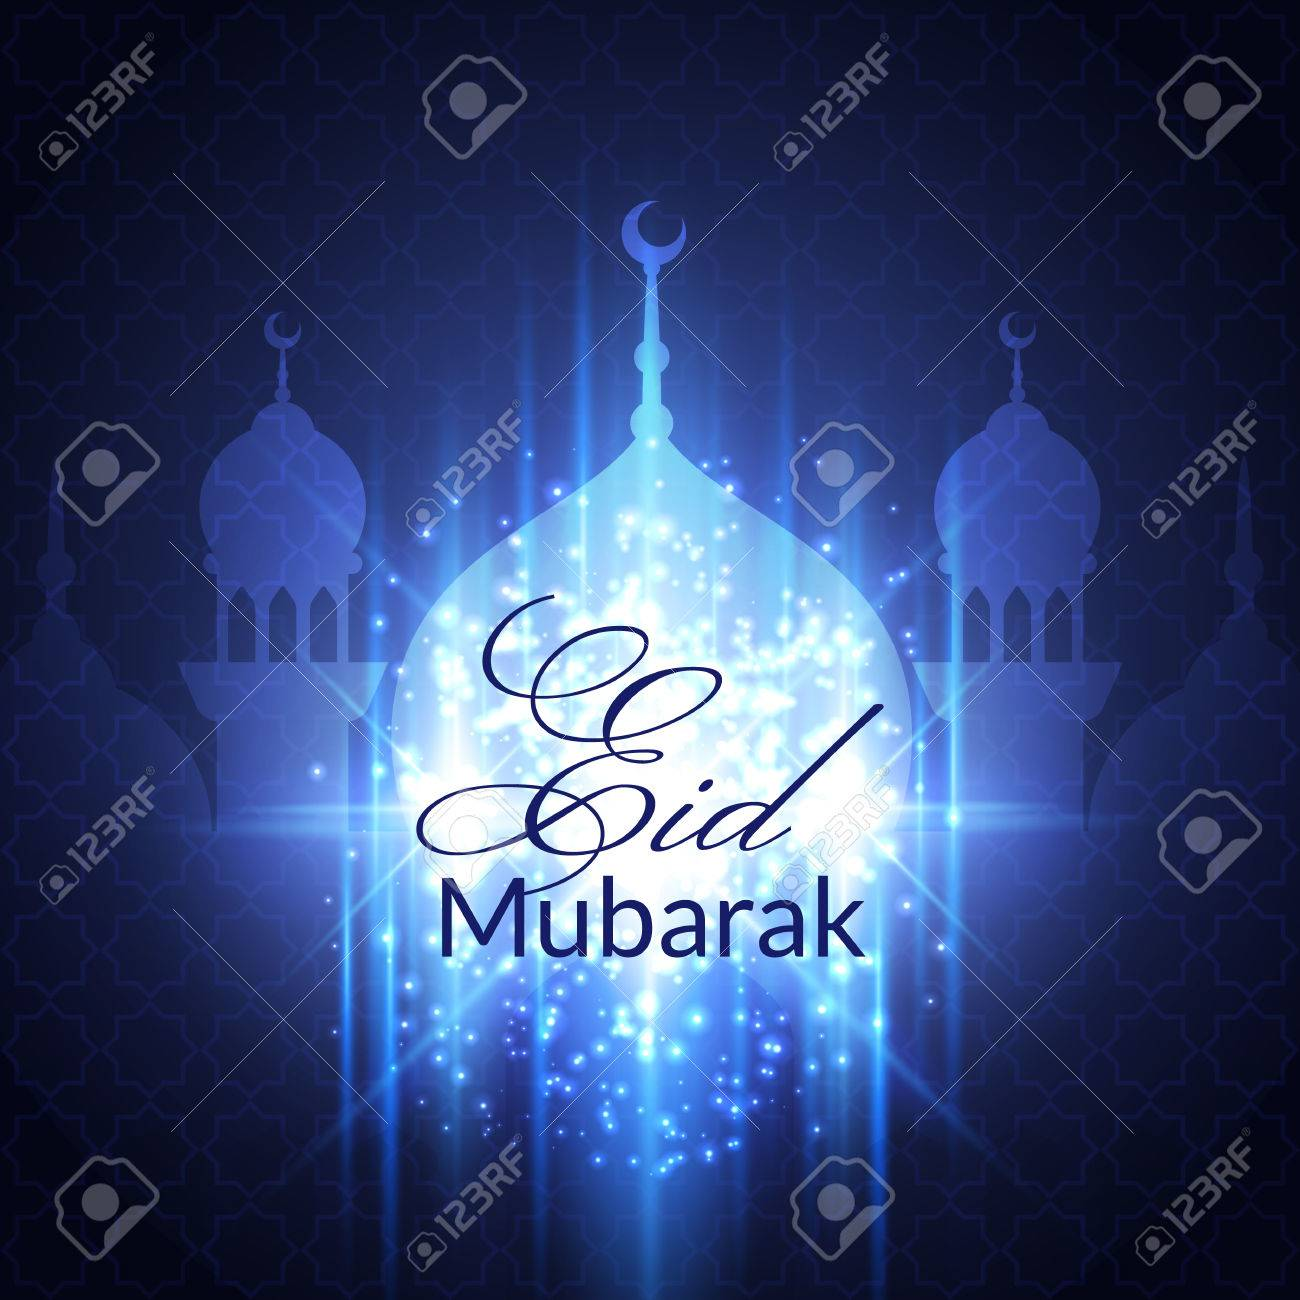 Eid mubarak greeting card with mosque and lights royalty free eid mubarak greeting card with mosque and lights stock vector 40132233 kristyandbryce Choice Image